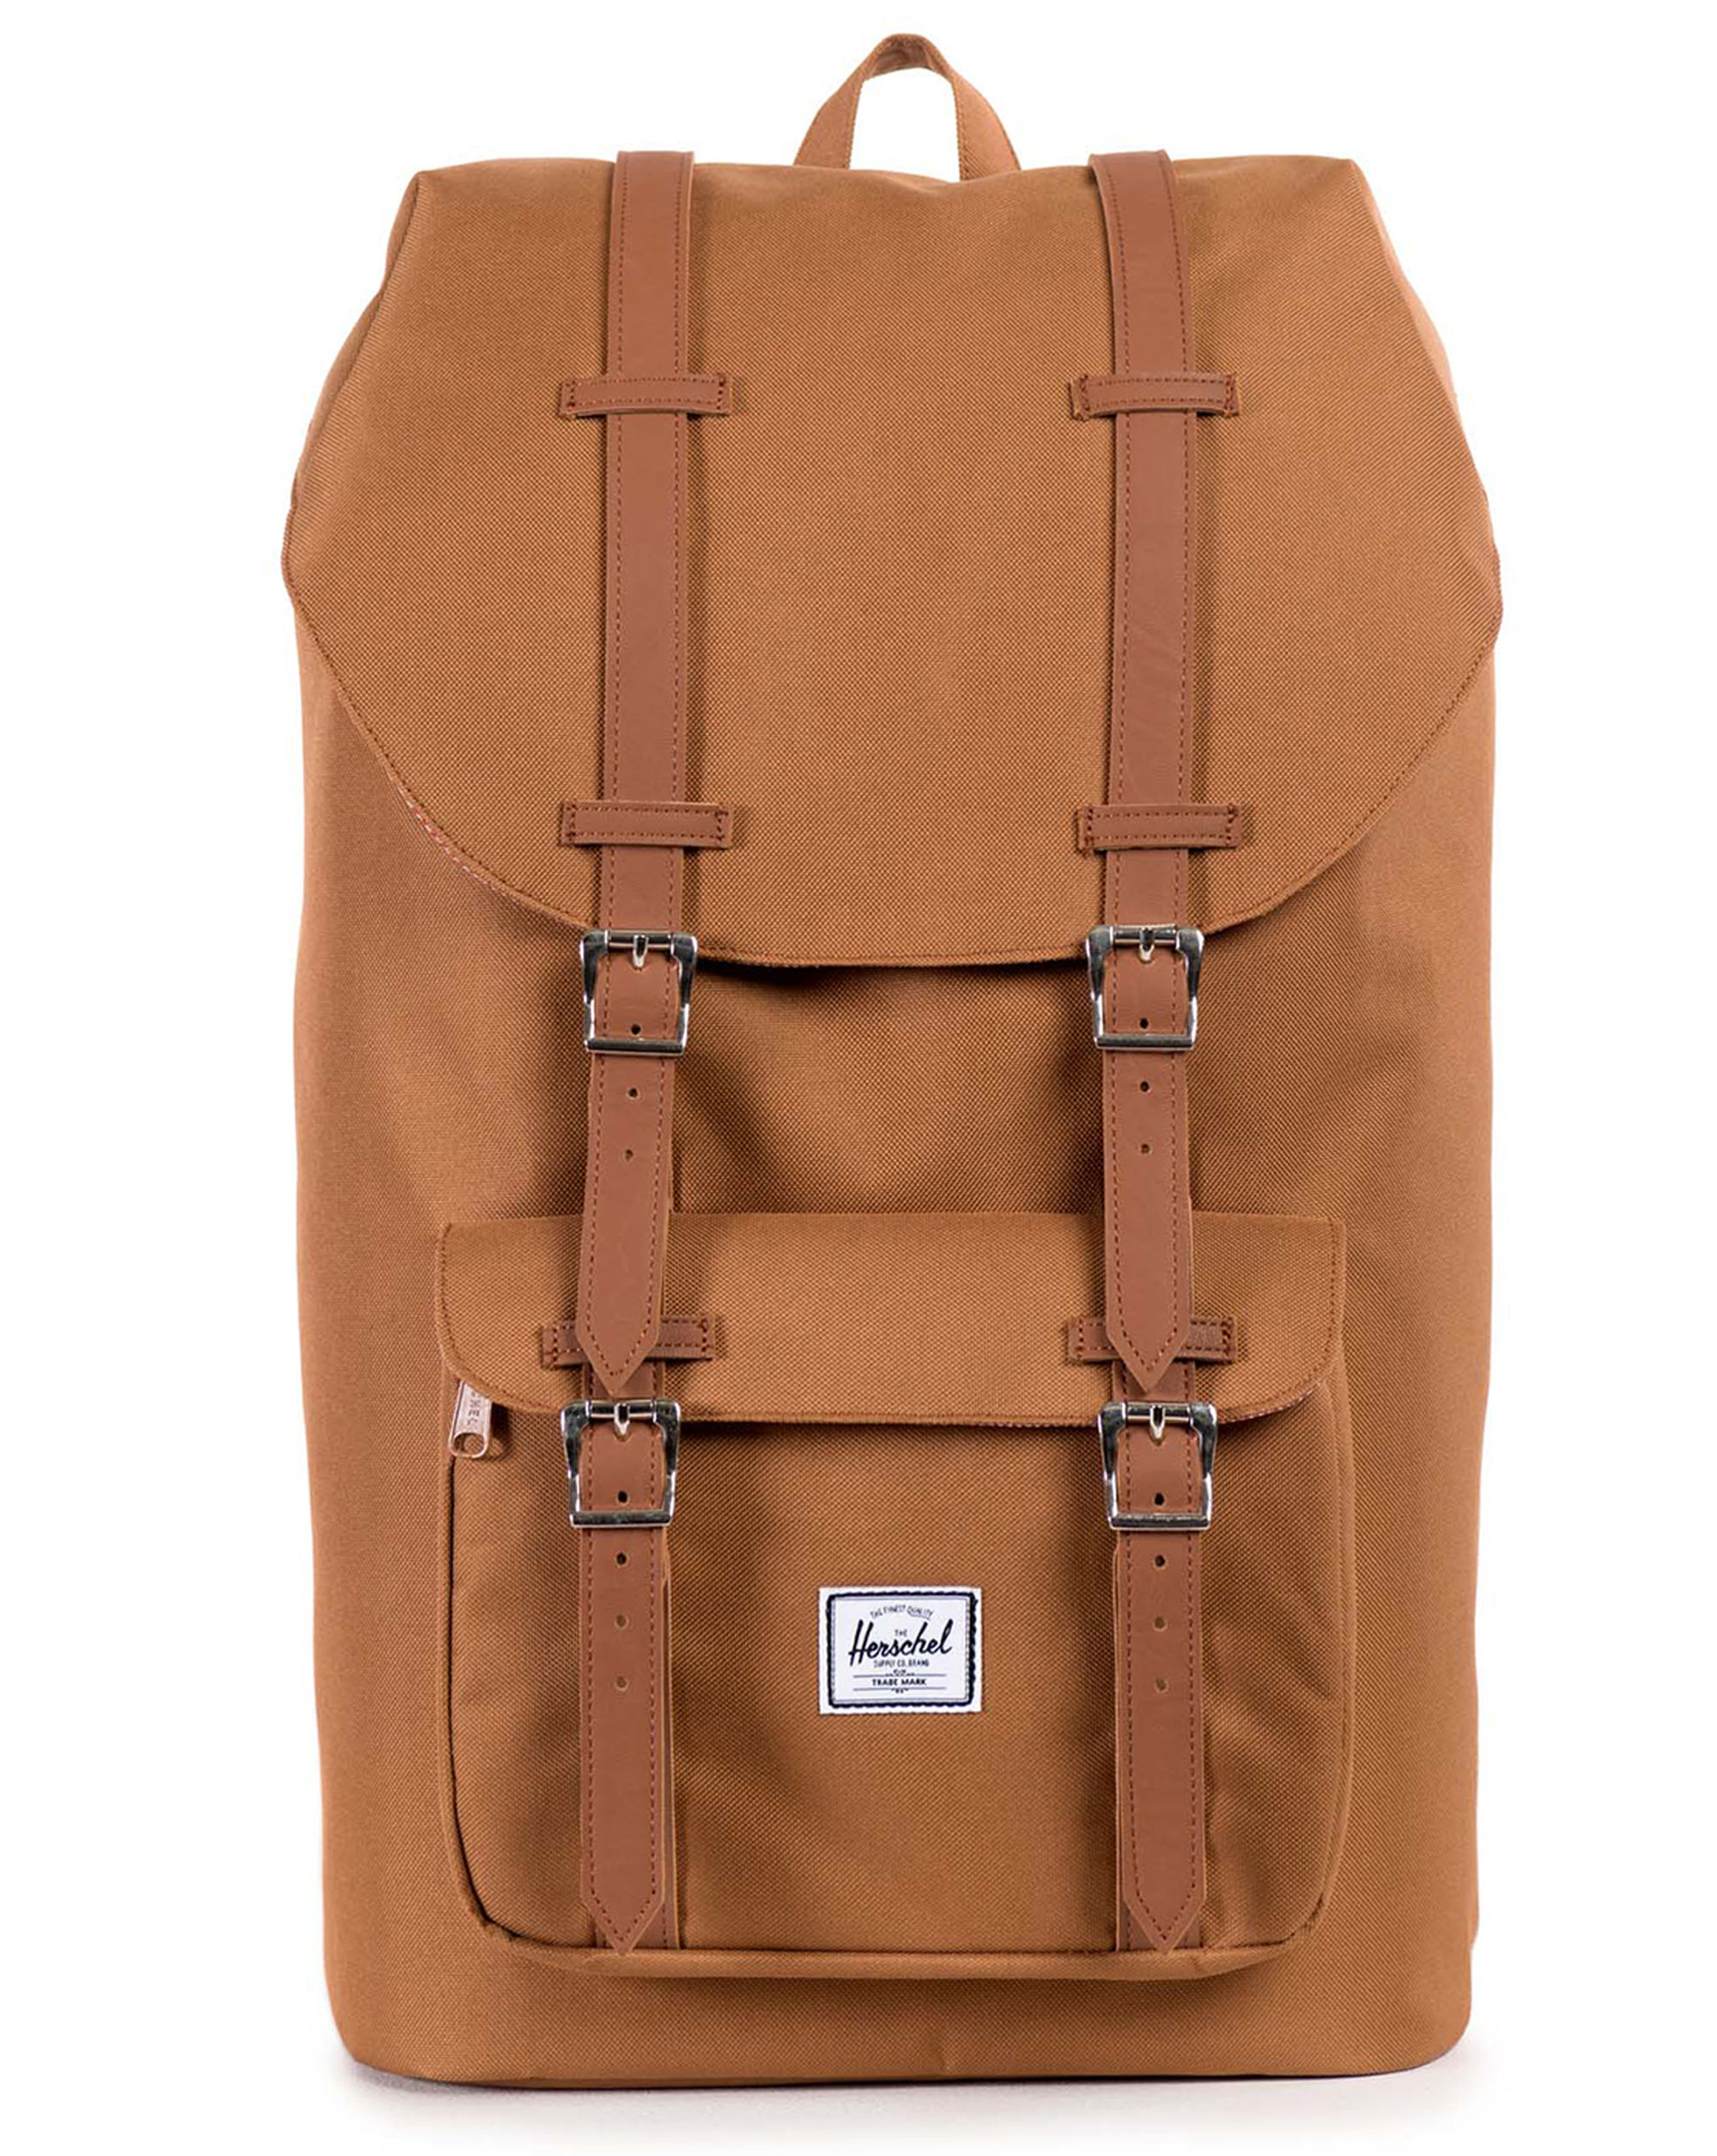 herschel supply co camel little america backpack 25 l in beige for men camel save 18 lyst. Black Bedroom Furniture Sets. Home Design Ideas